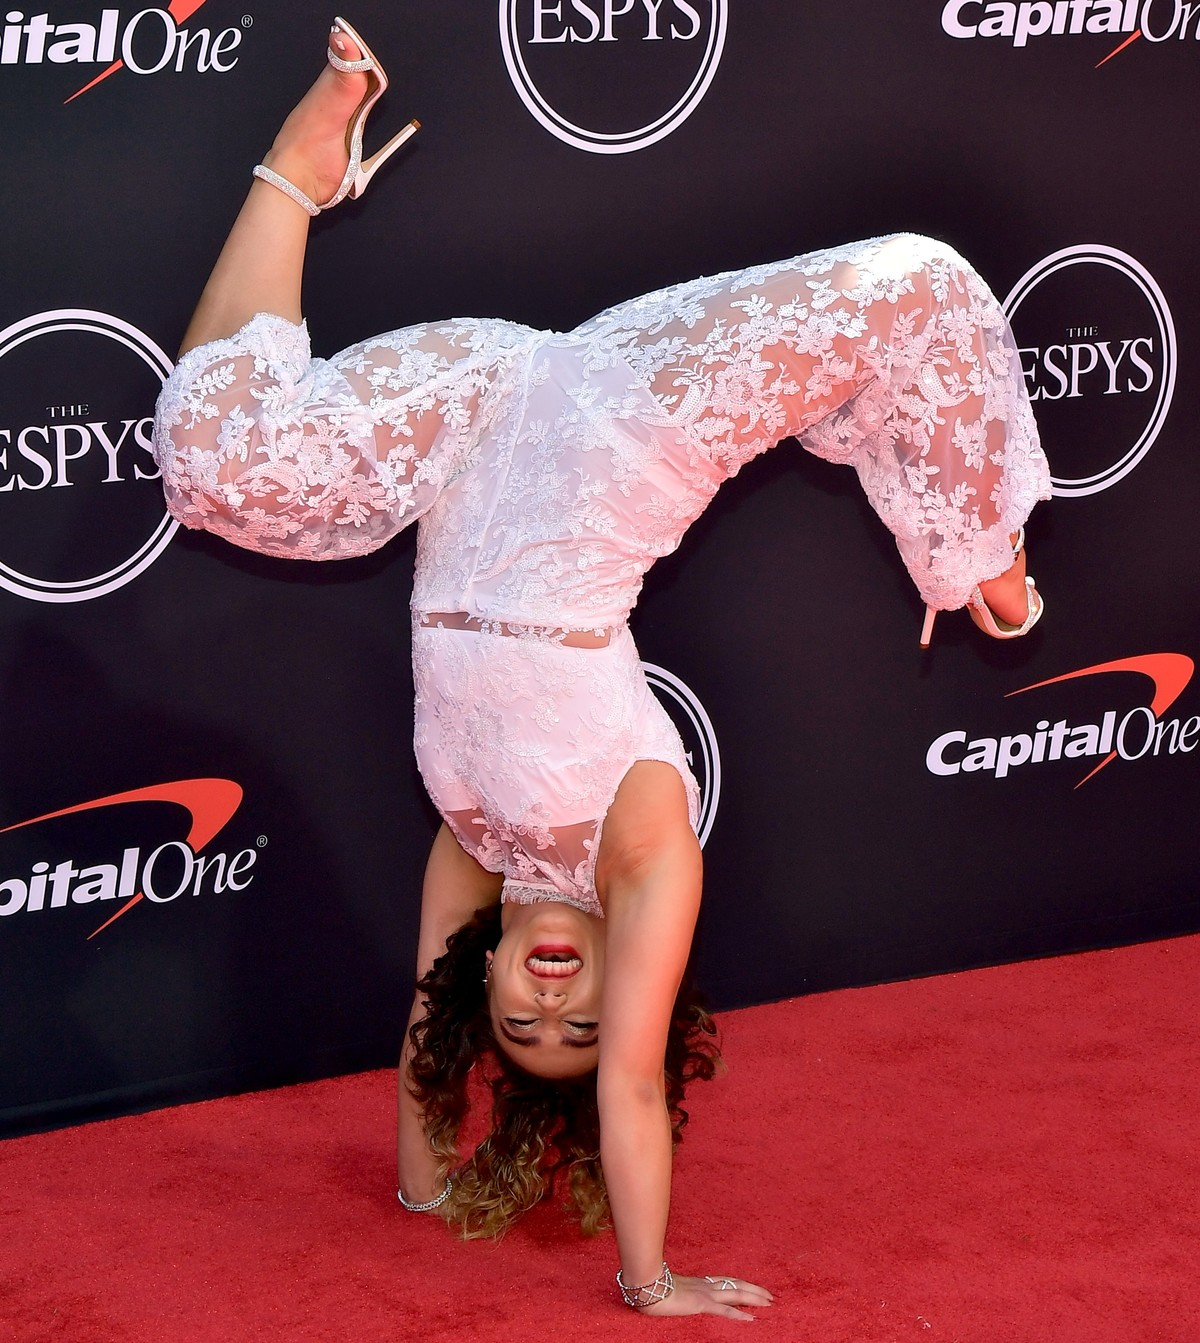 Katelyn Ohashi handstanding at the 2019 ESPY Awards red carpet